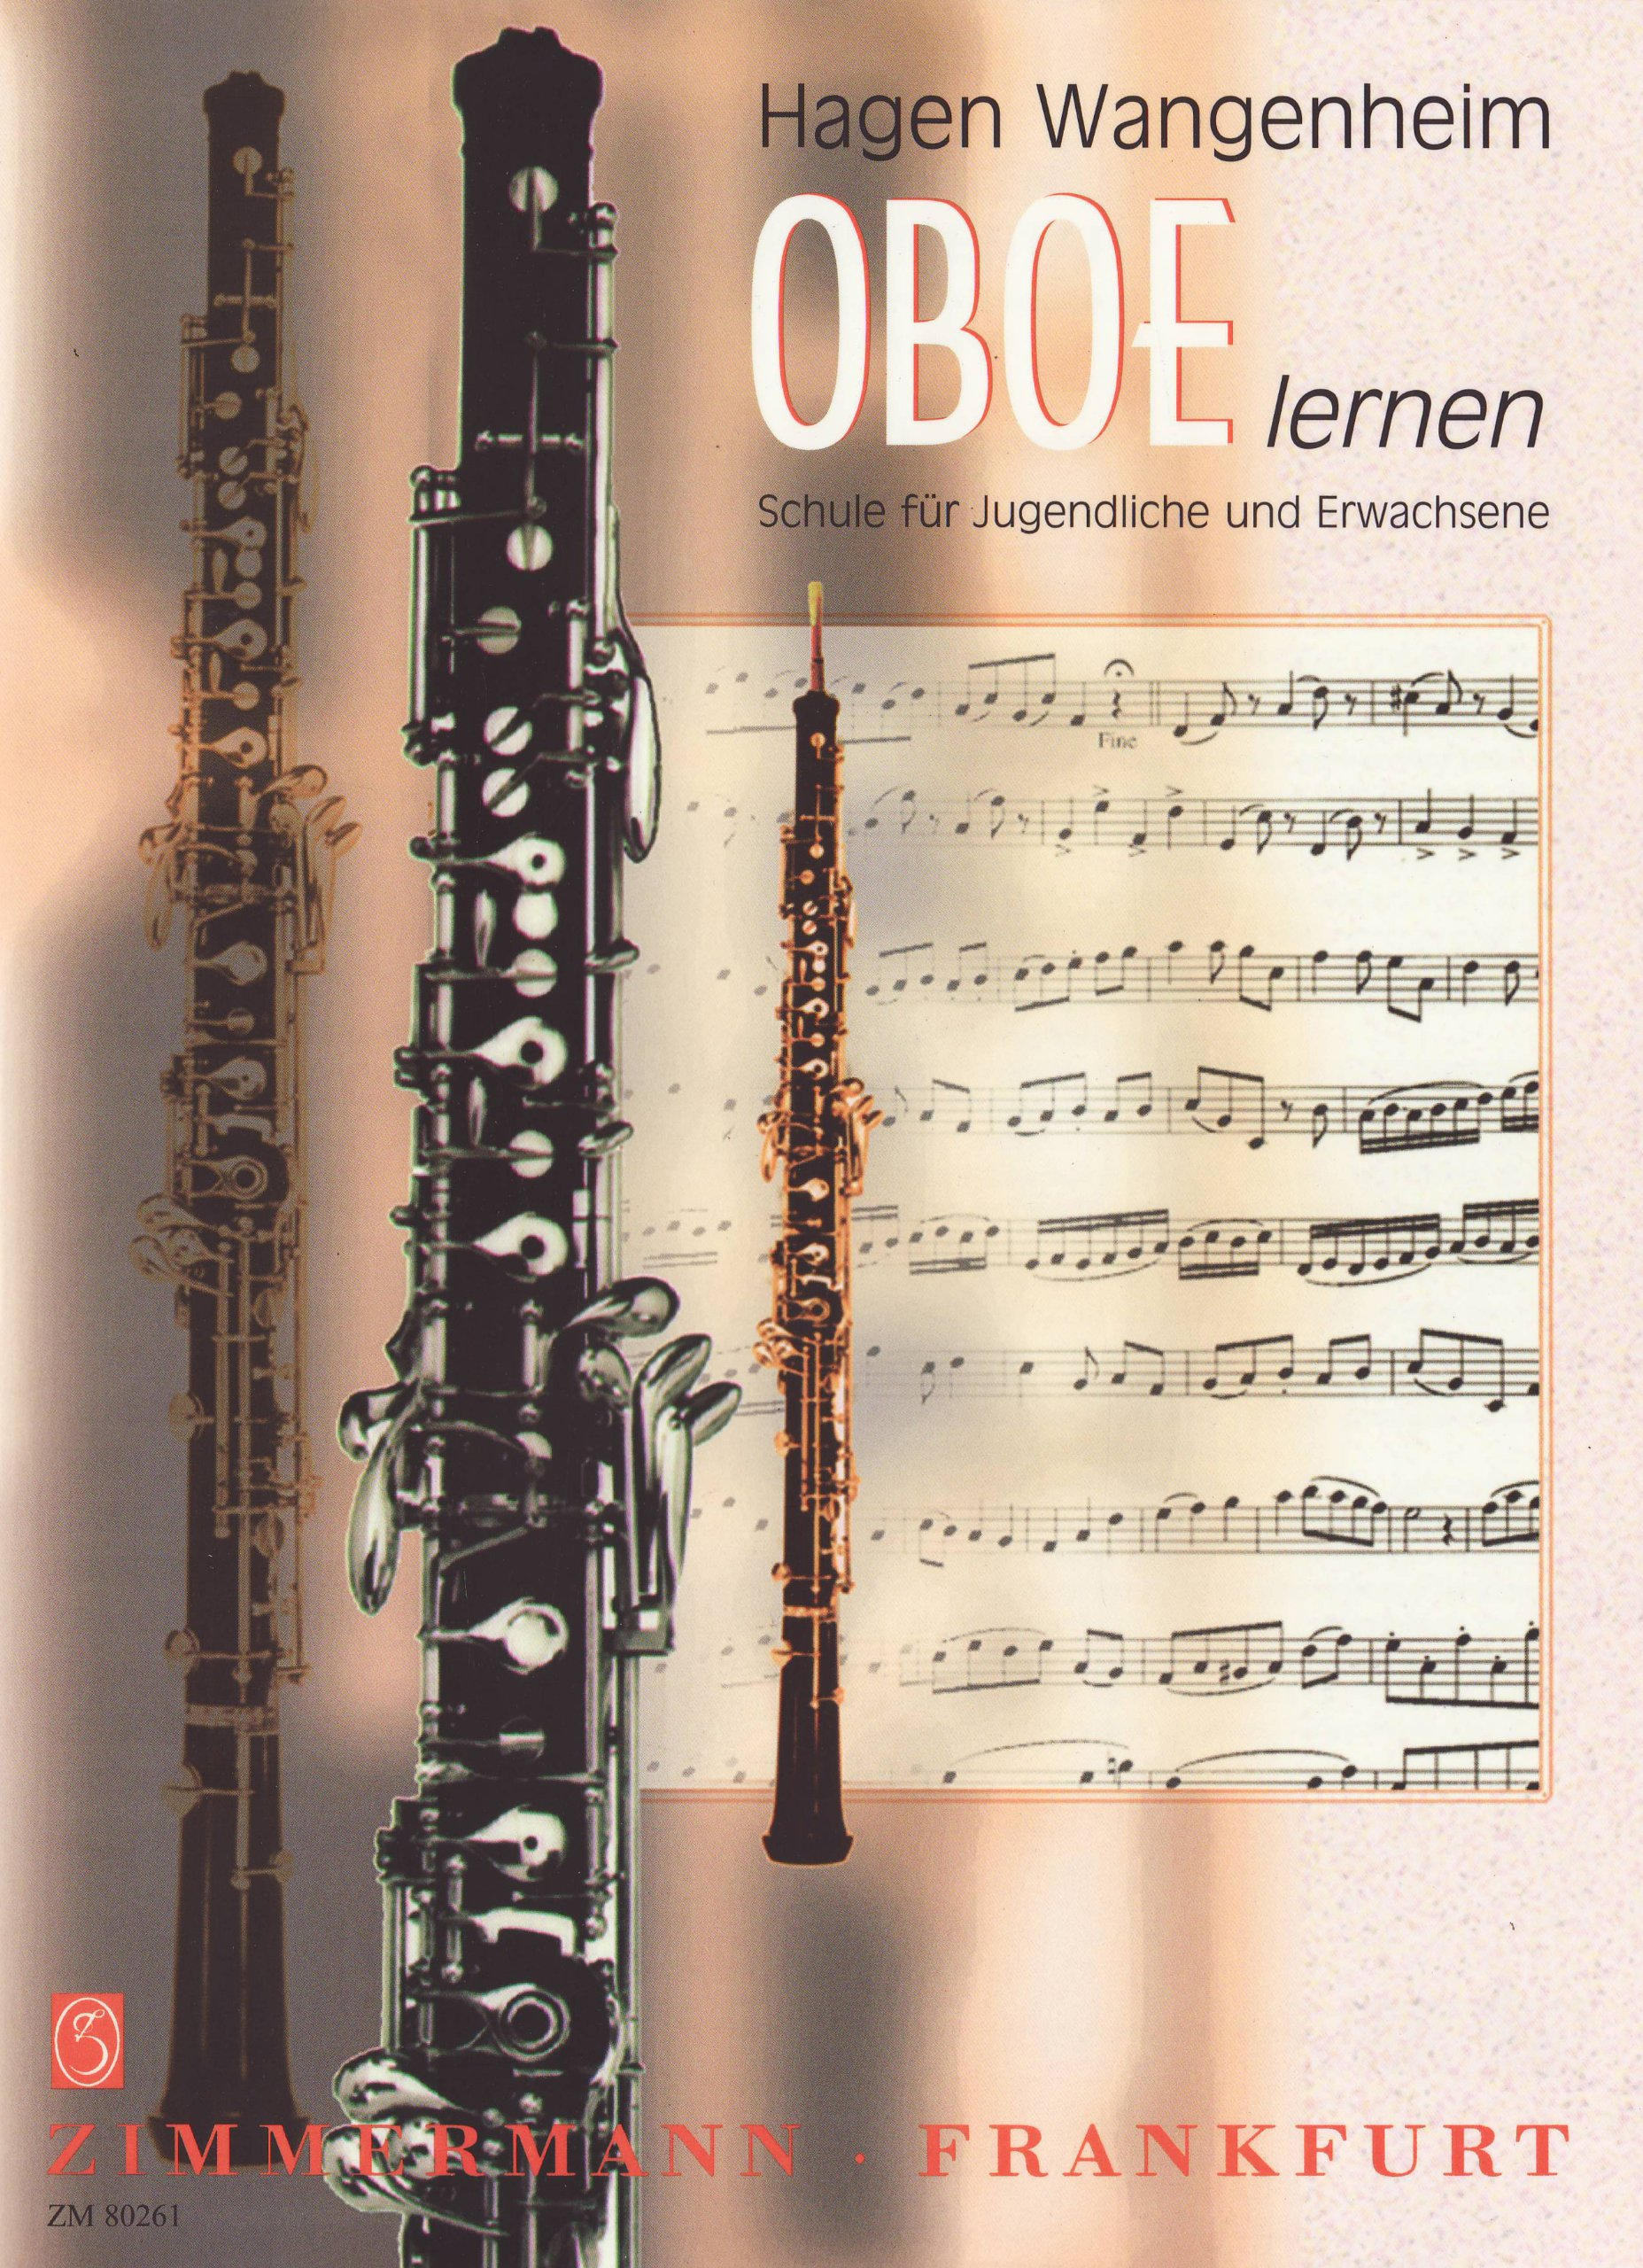 OBOE LERNEN Method (text in German)